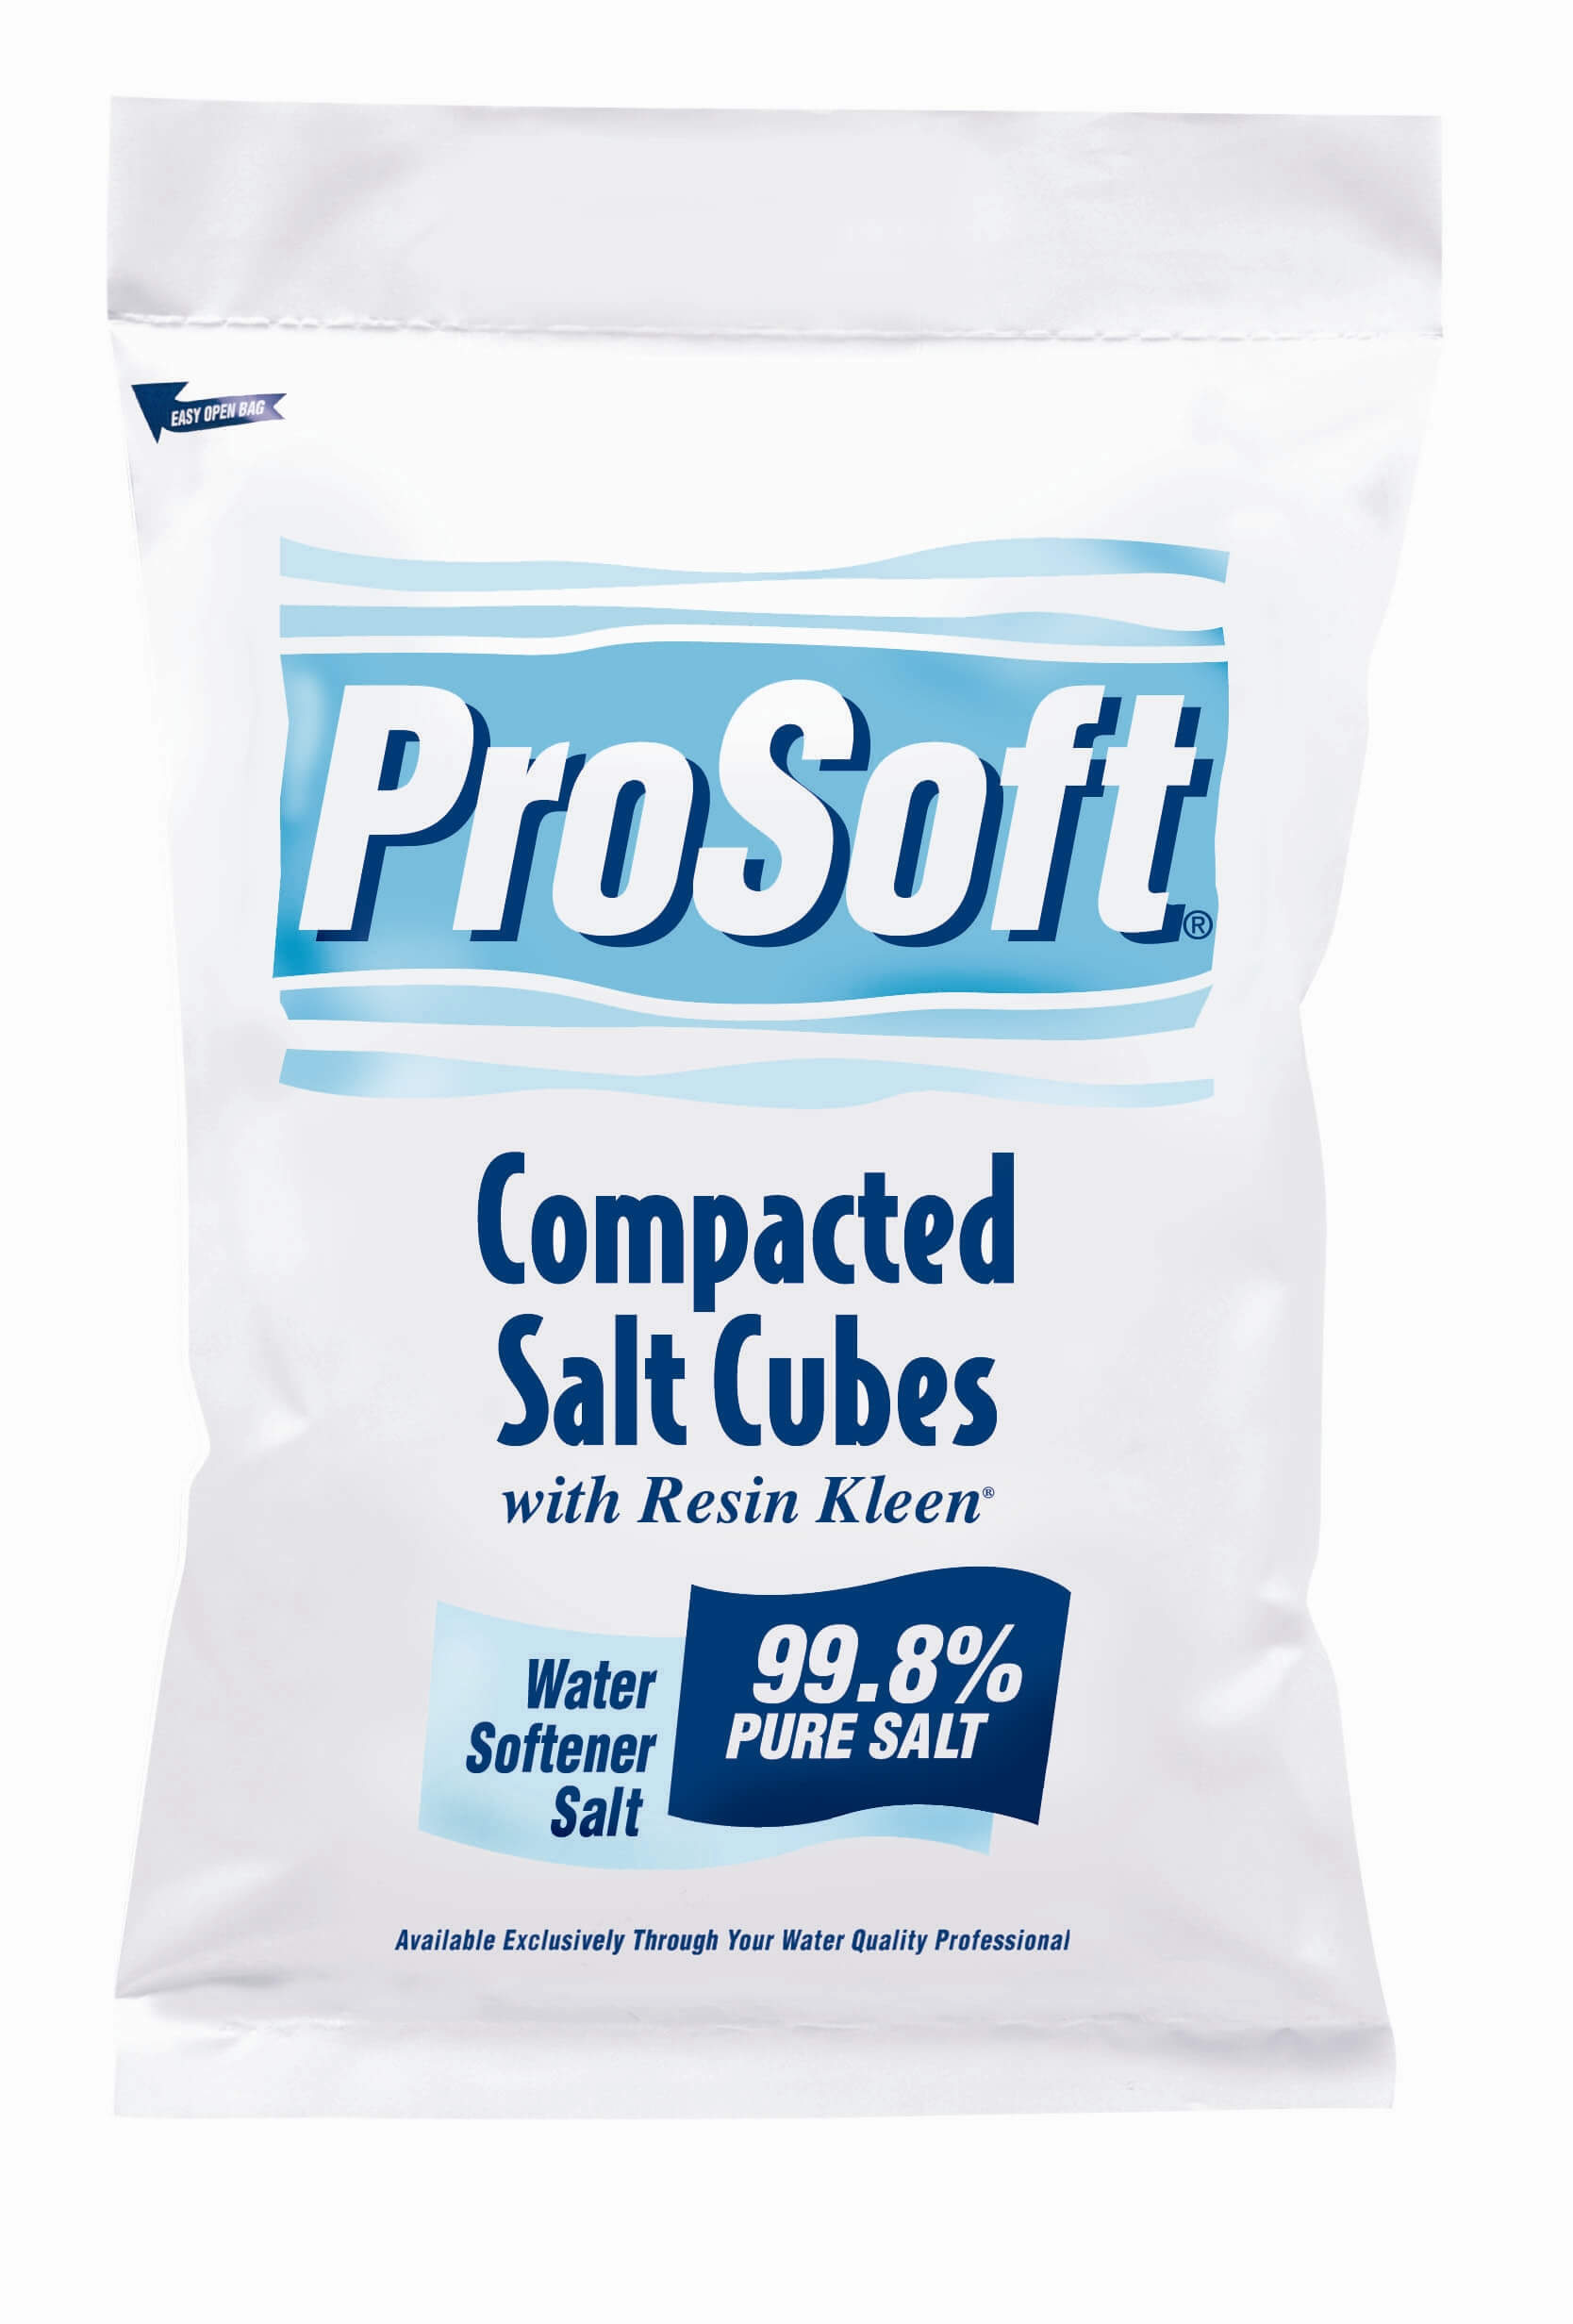 Water Softener Salt Delivery from U. S. Water, LLC